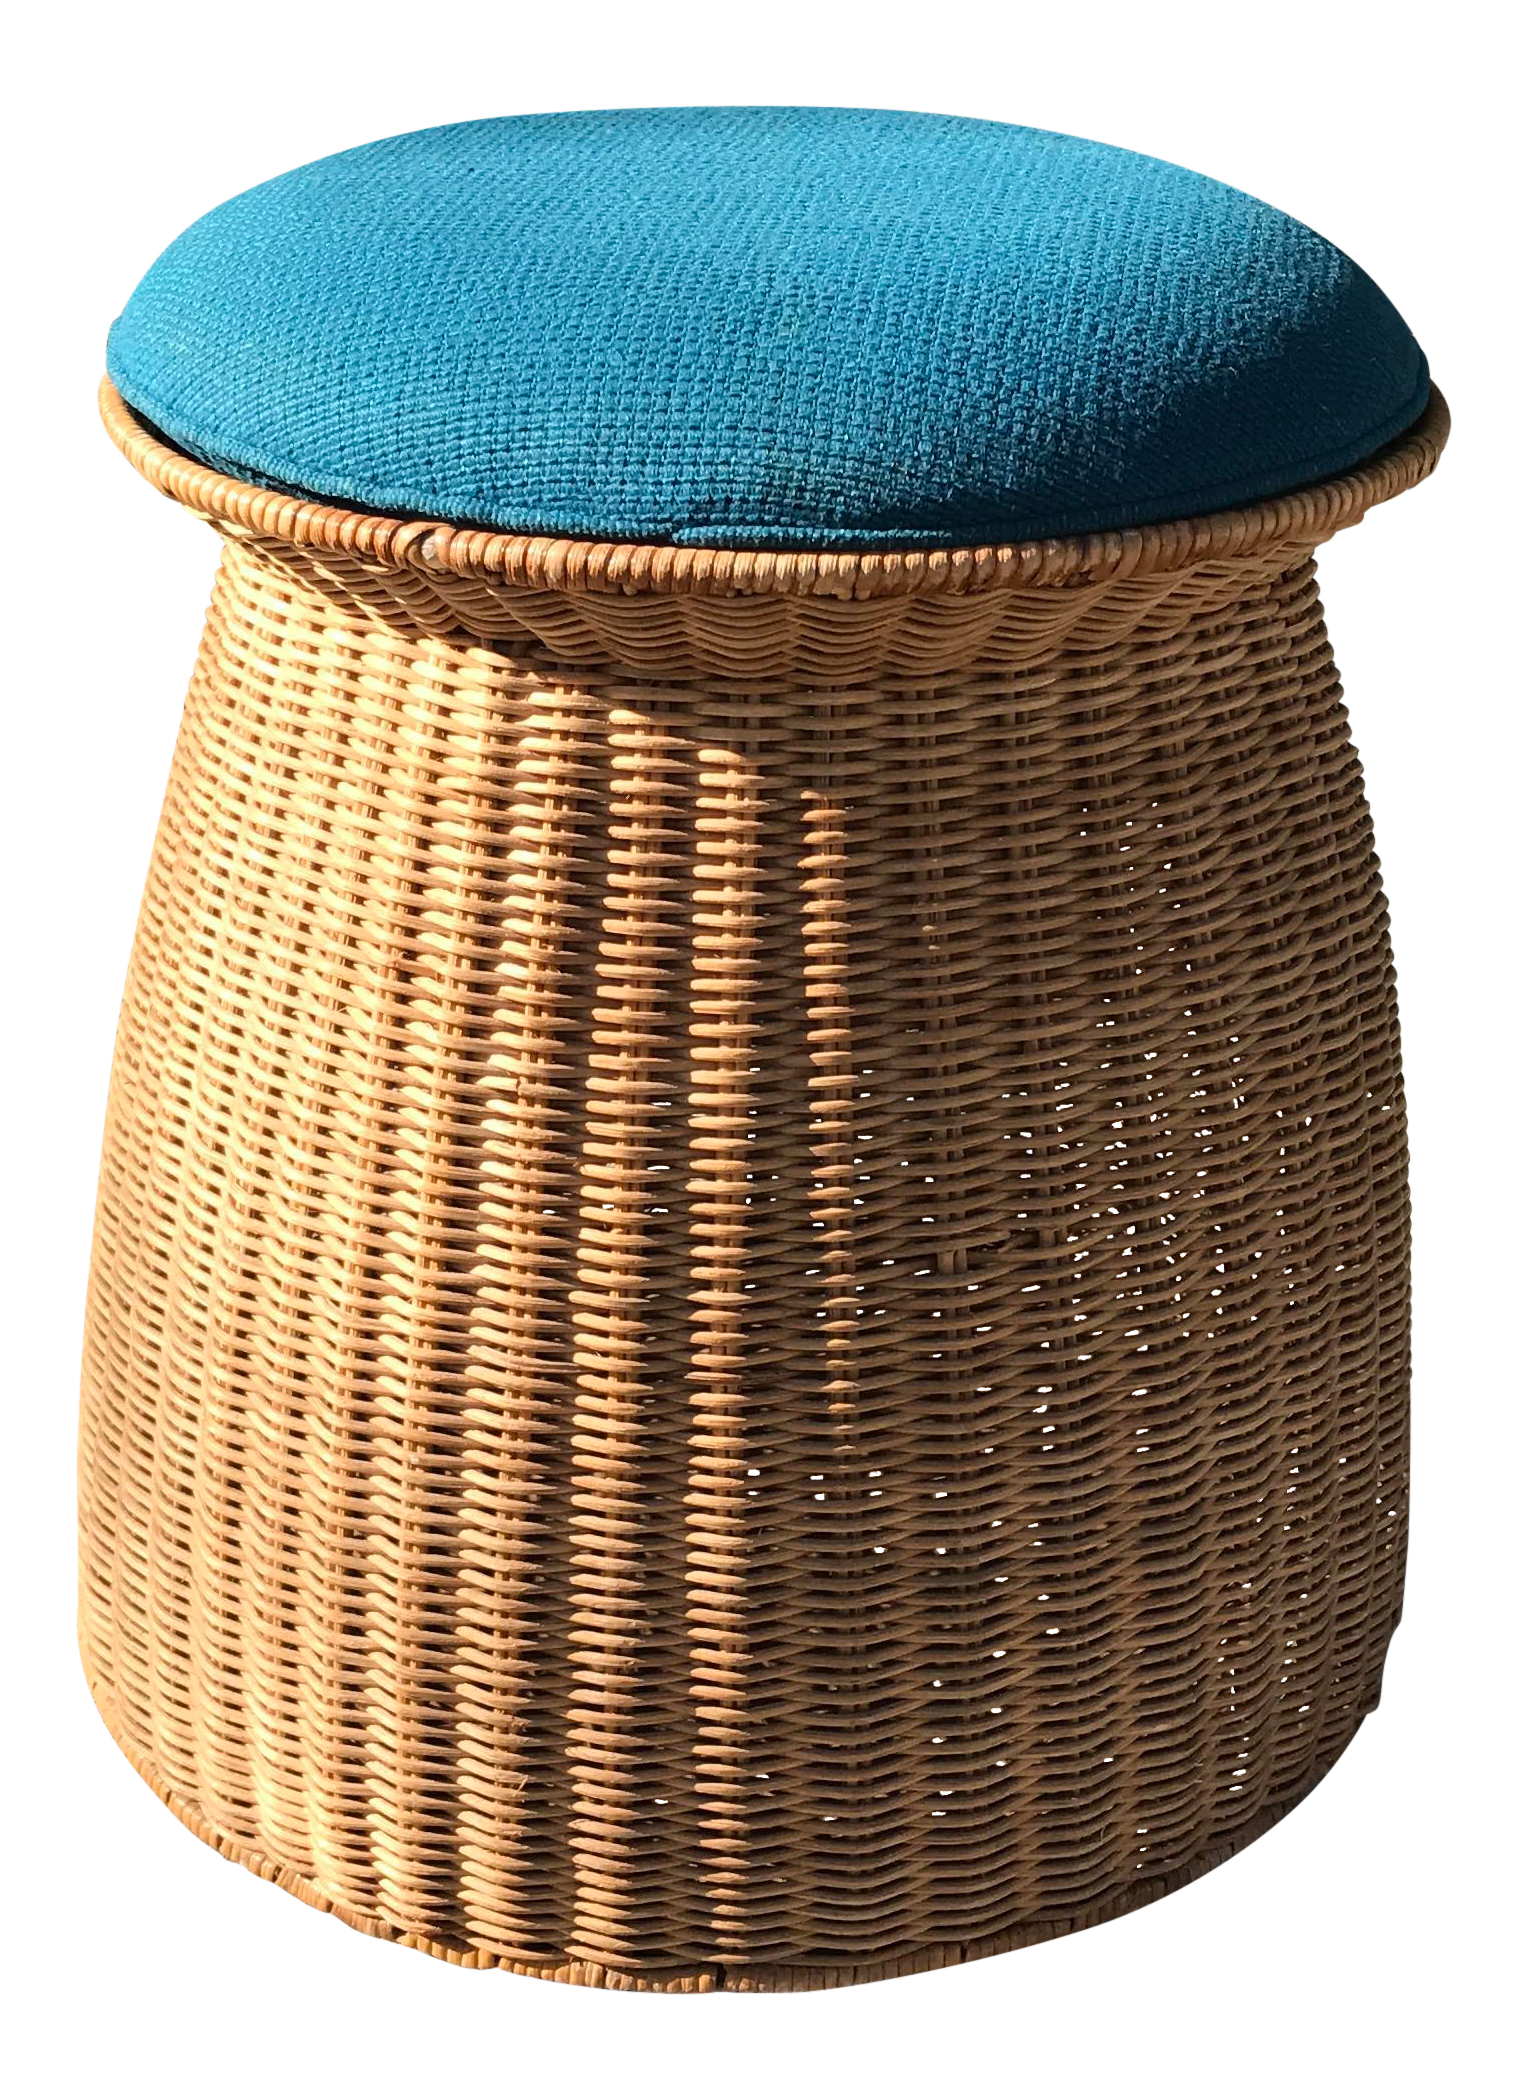 1960s Japanese Storage Stool In Wicker